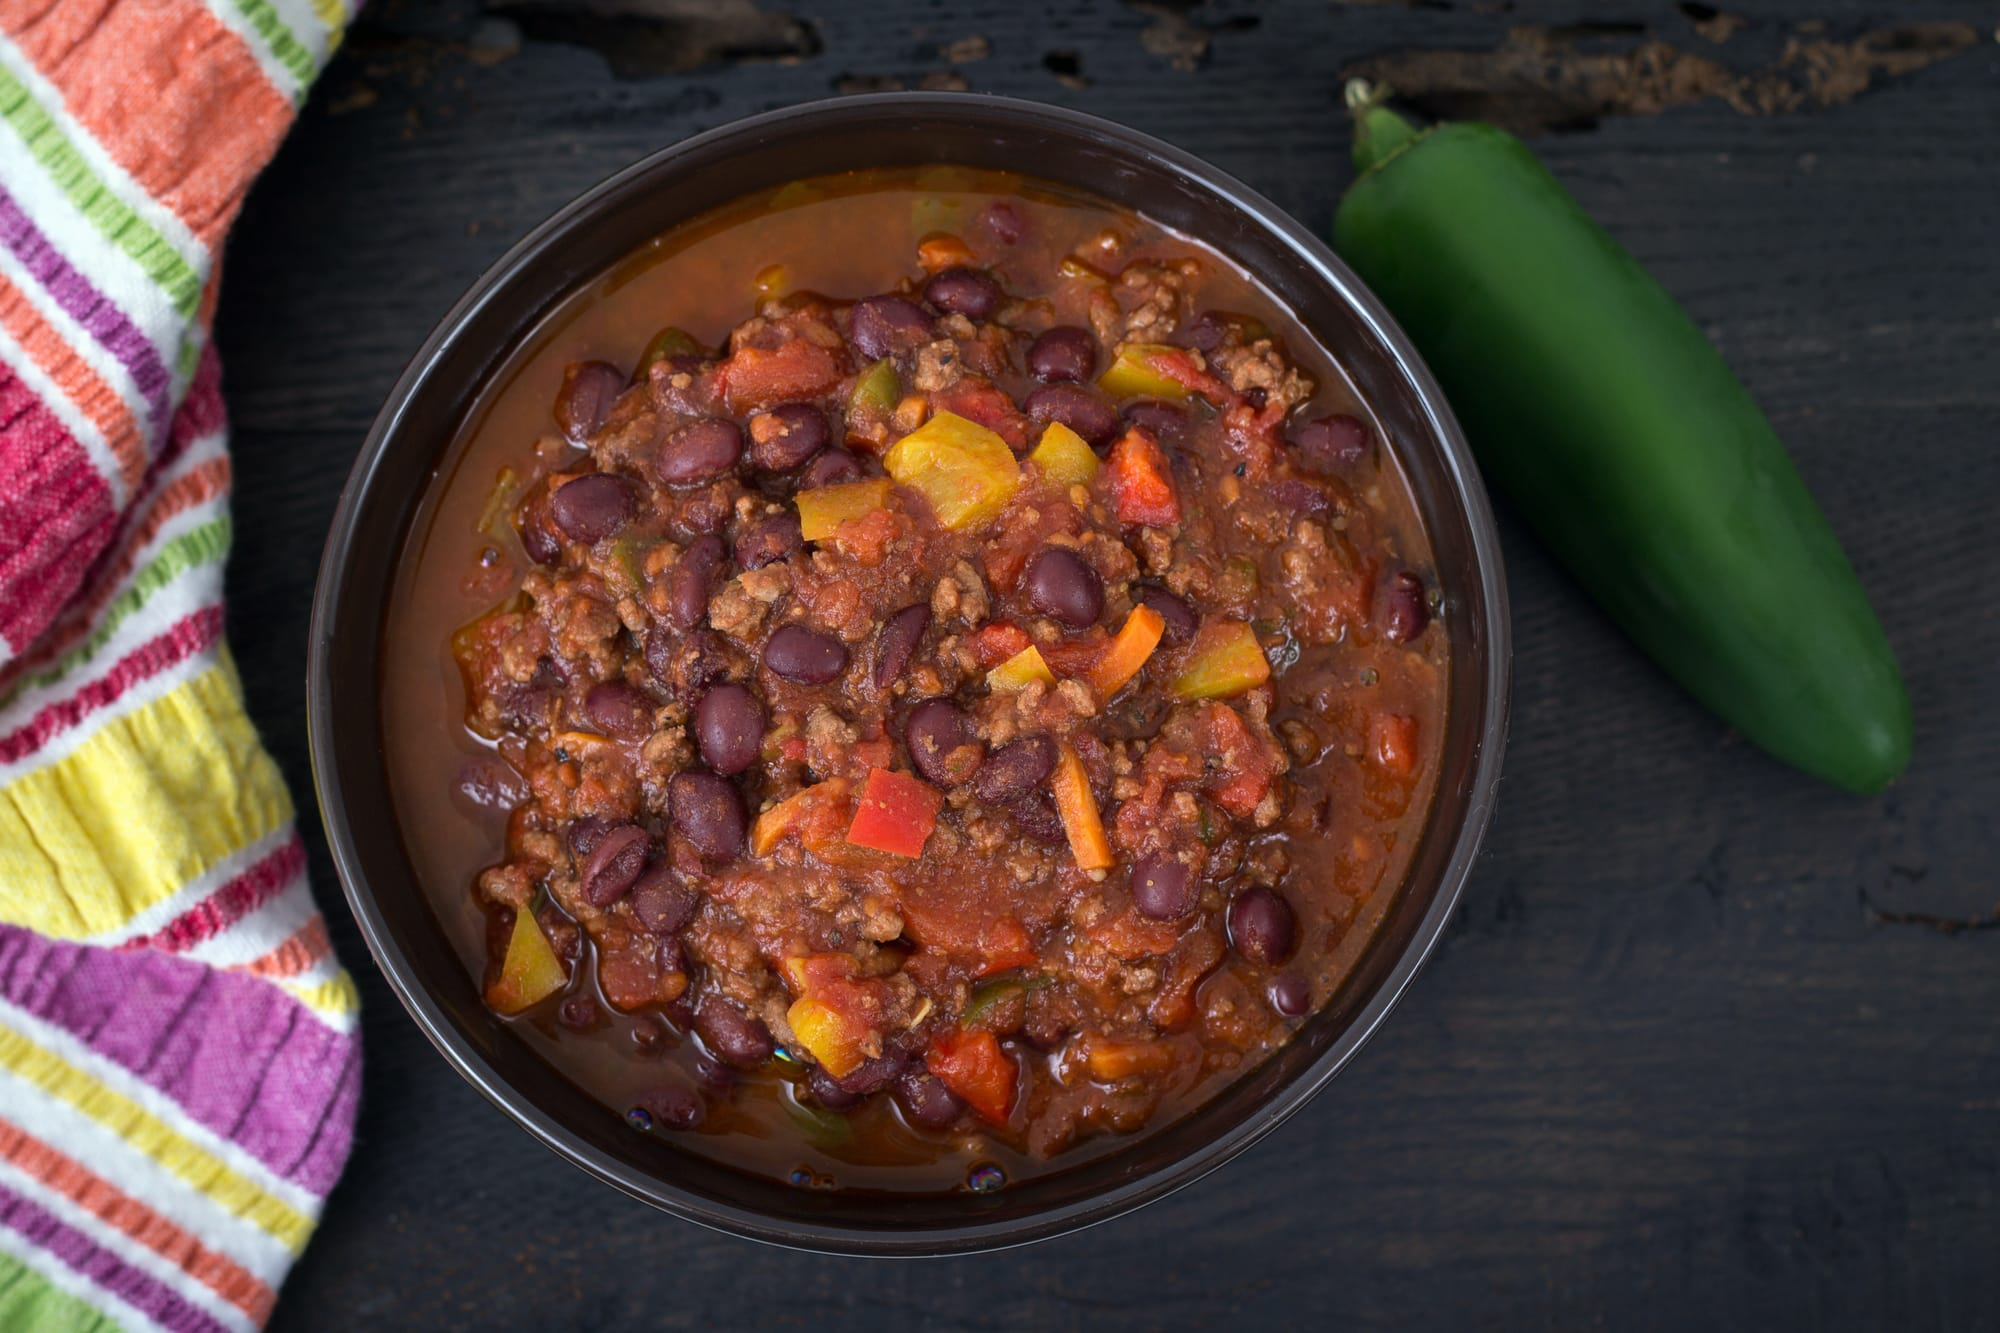 How long does chili last in the fridge